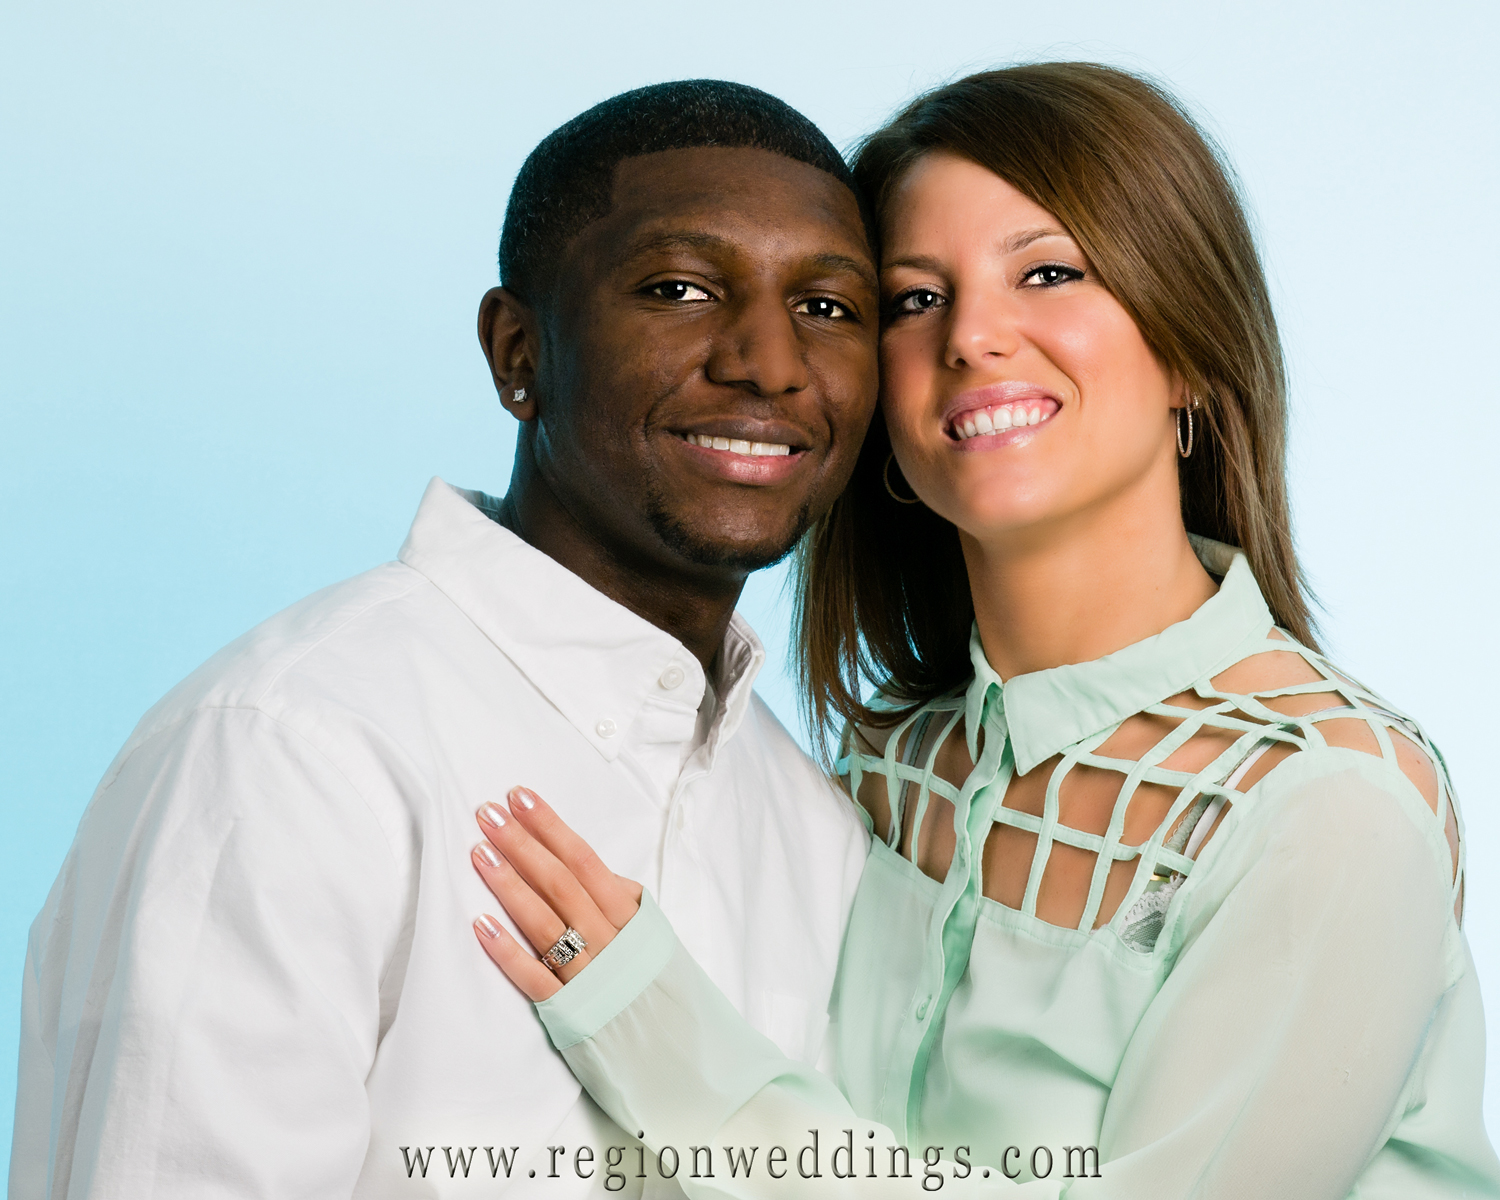 A mixed race couple poses for an engagement photo in a Crown Point portrait studio.